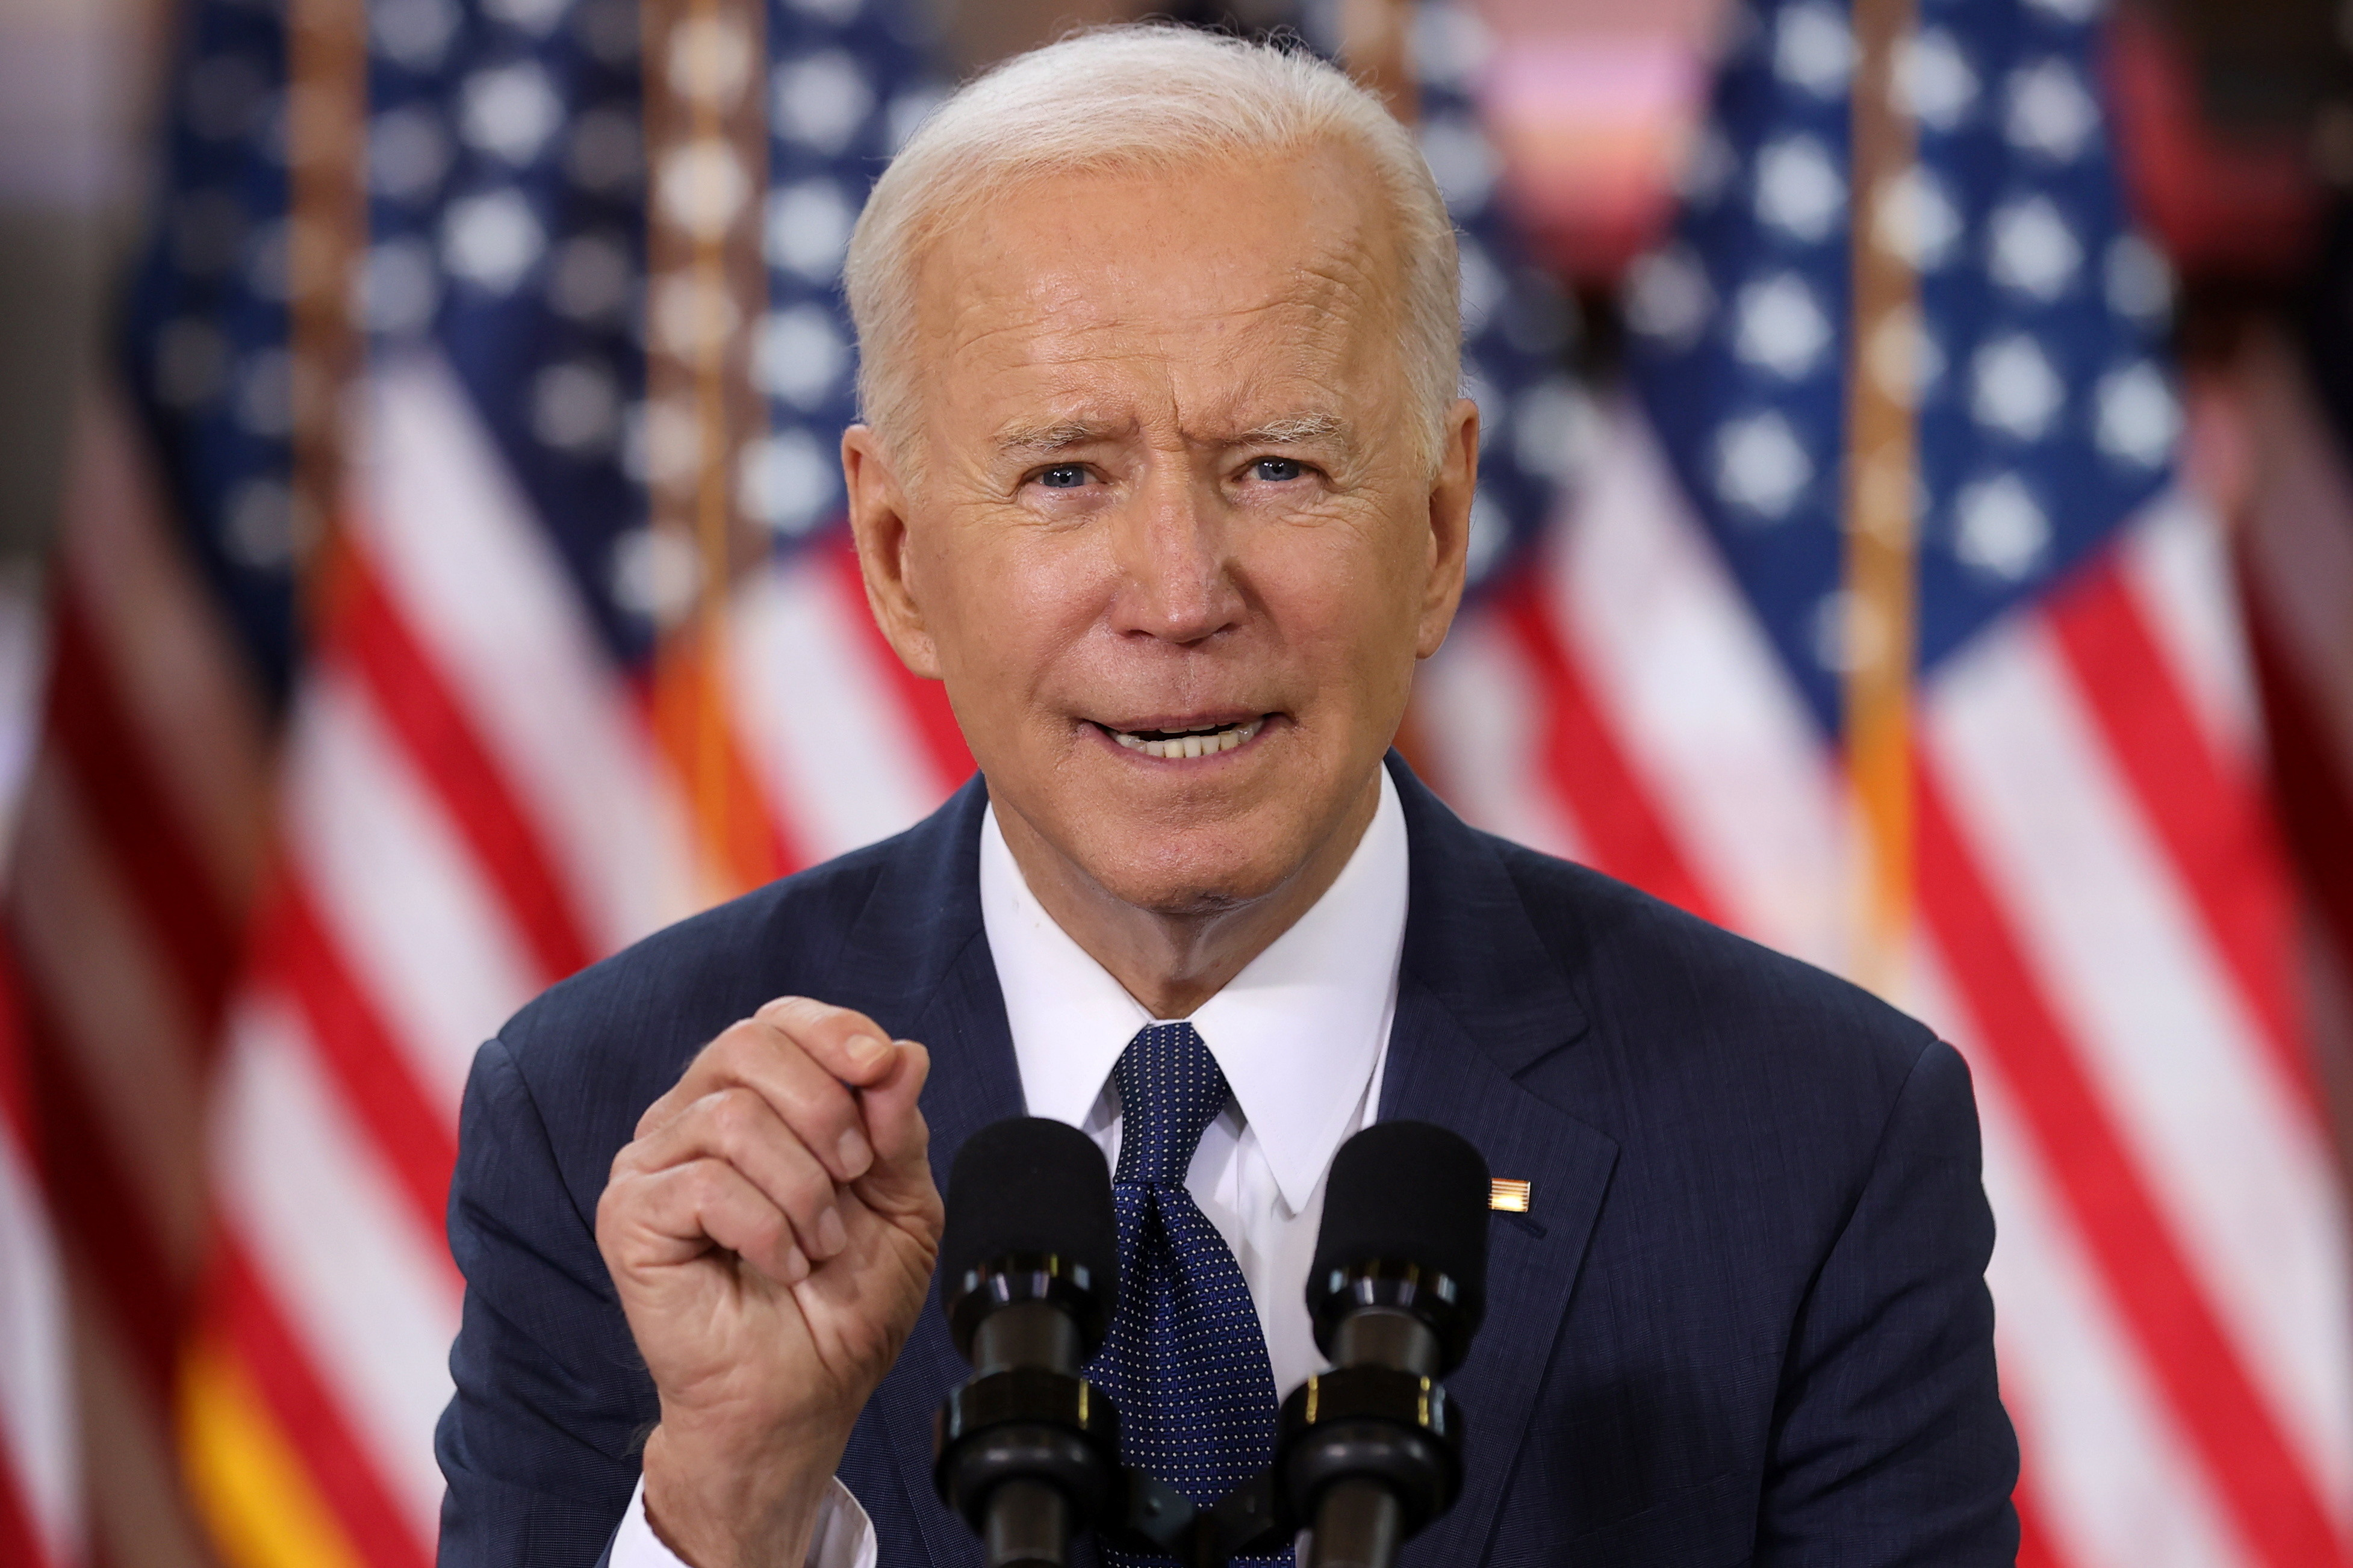 image of U.S. President Joe Biden speaking about his $2 trillion infrastructure plan during an event